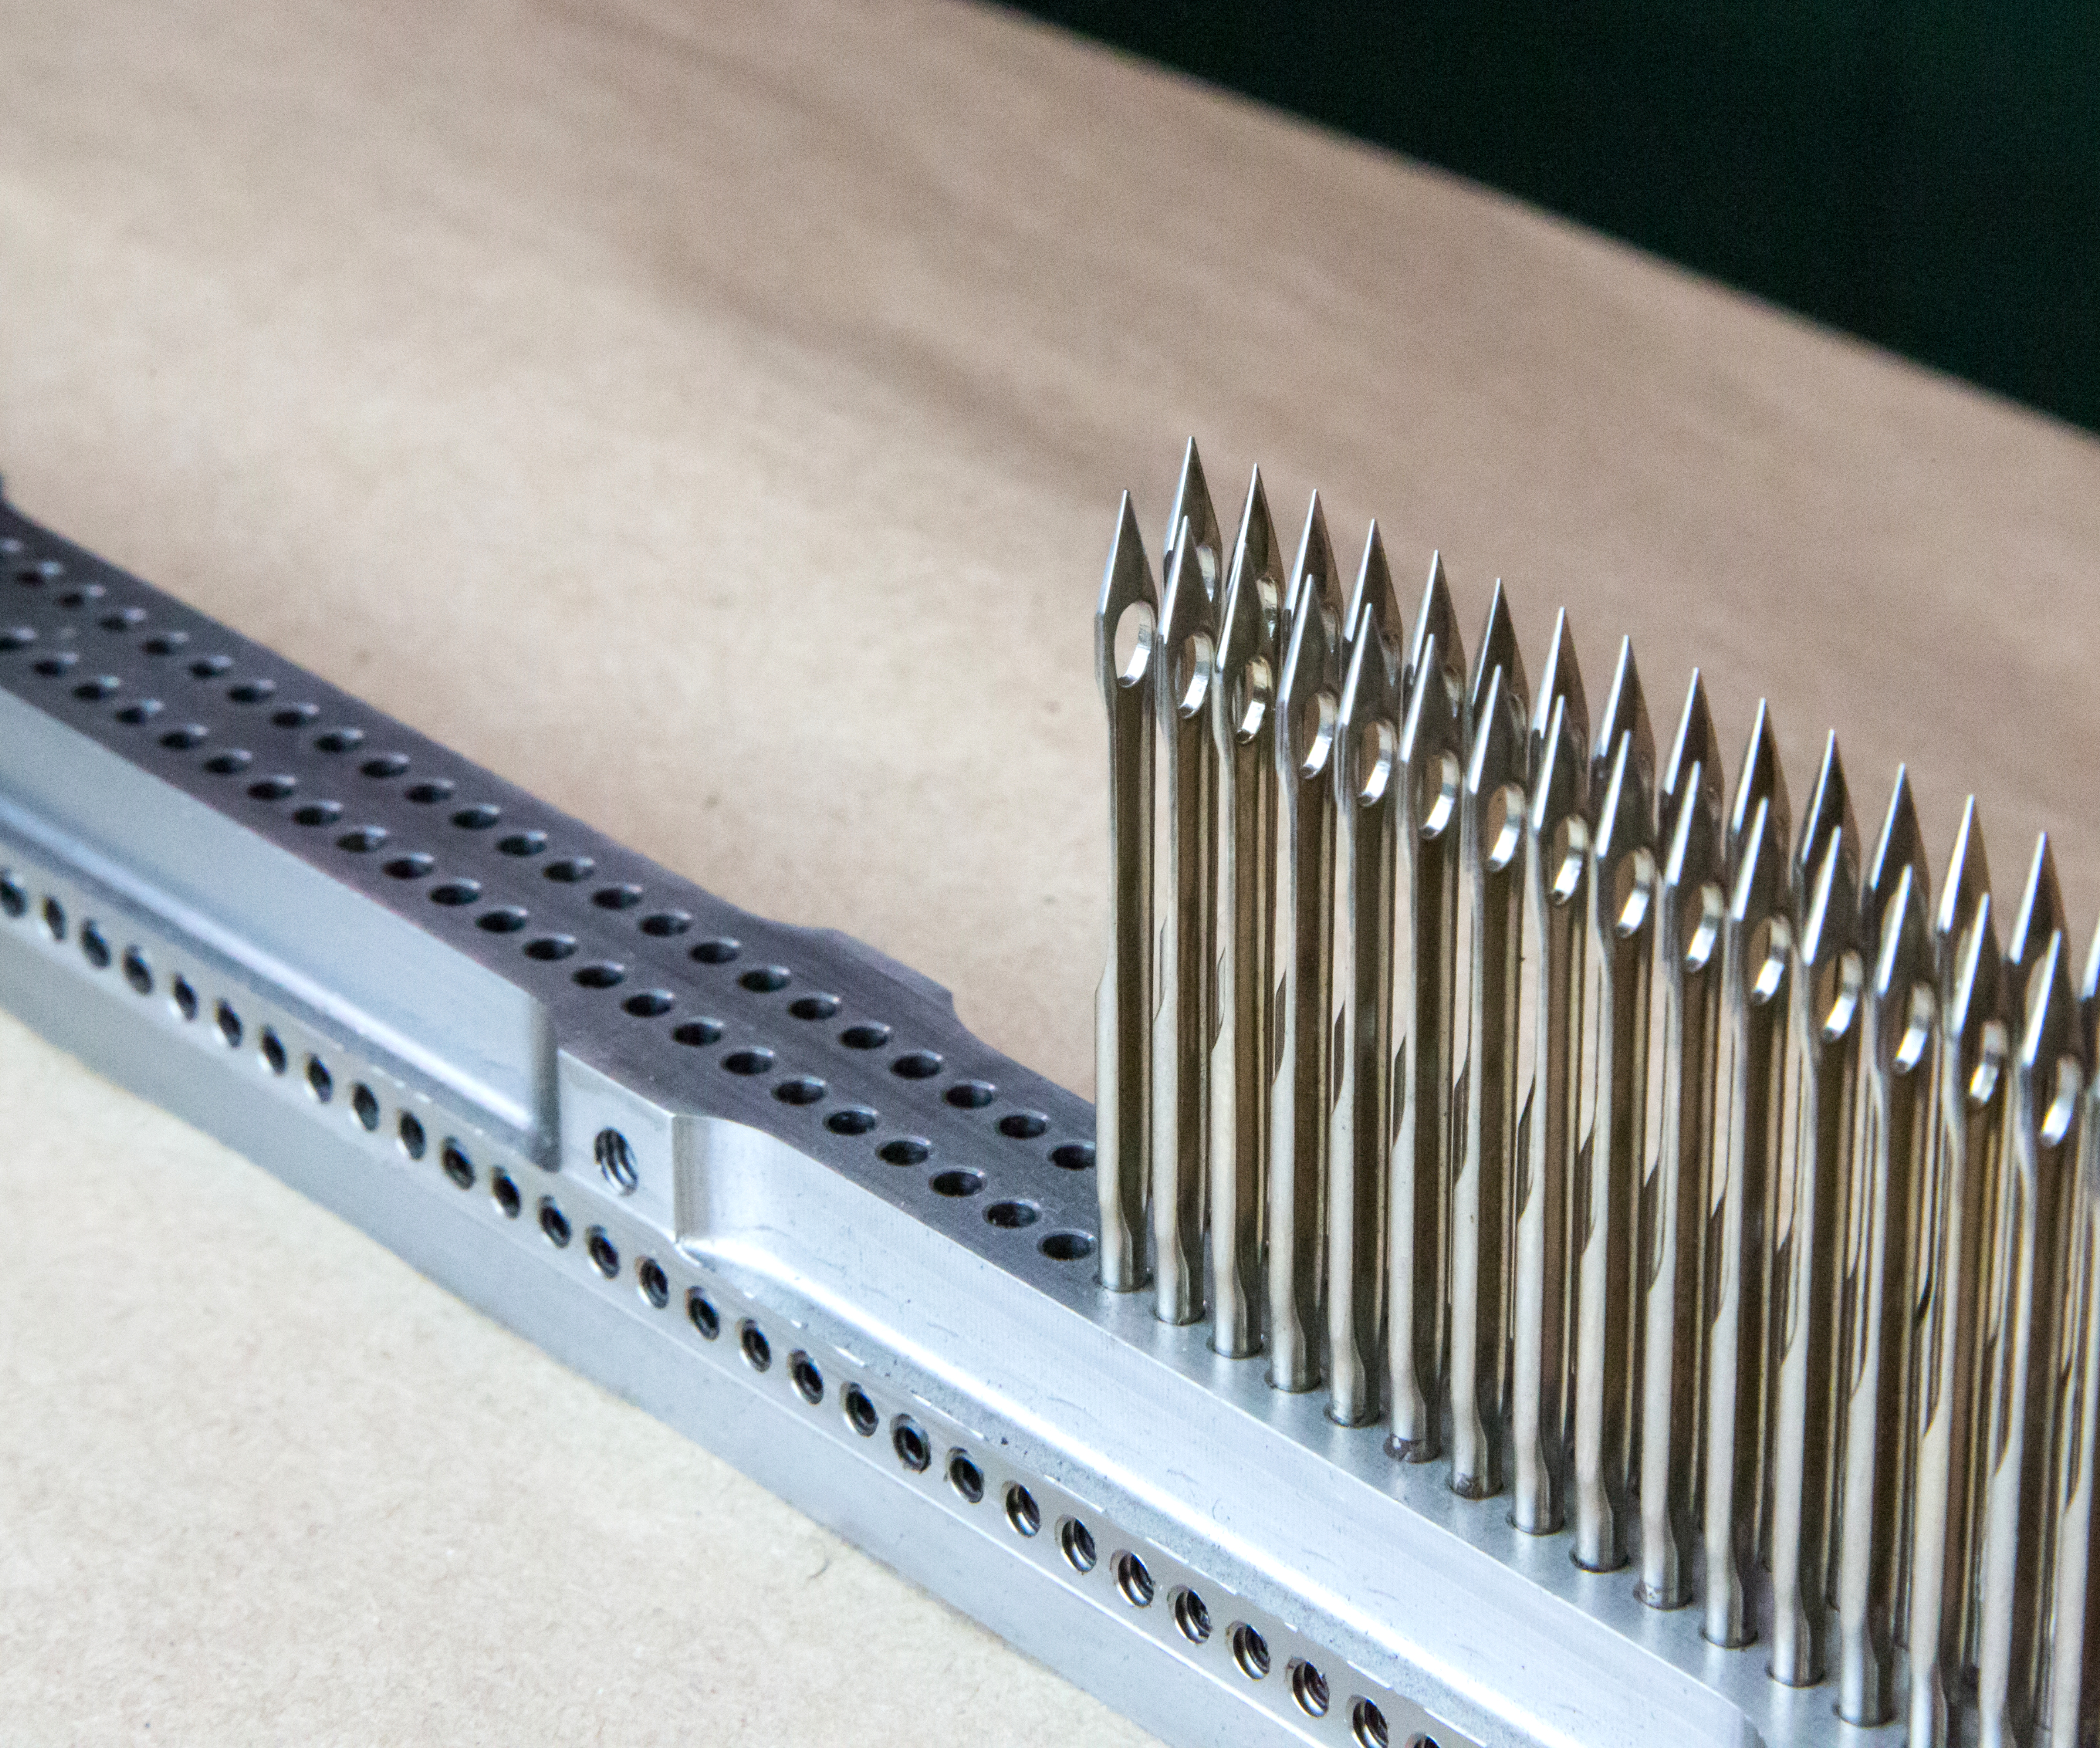 needle bar with drilled holes and tufting needles